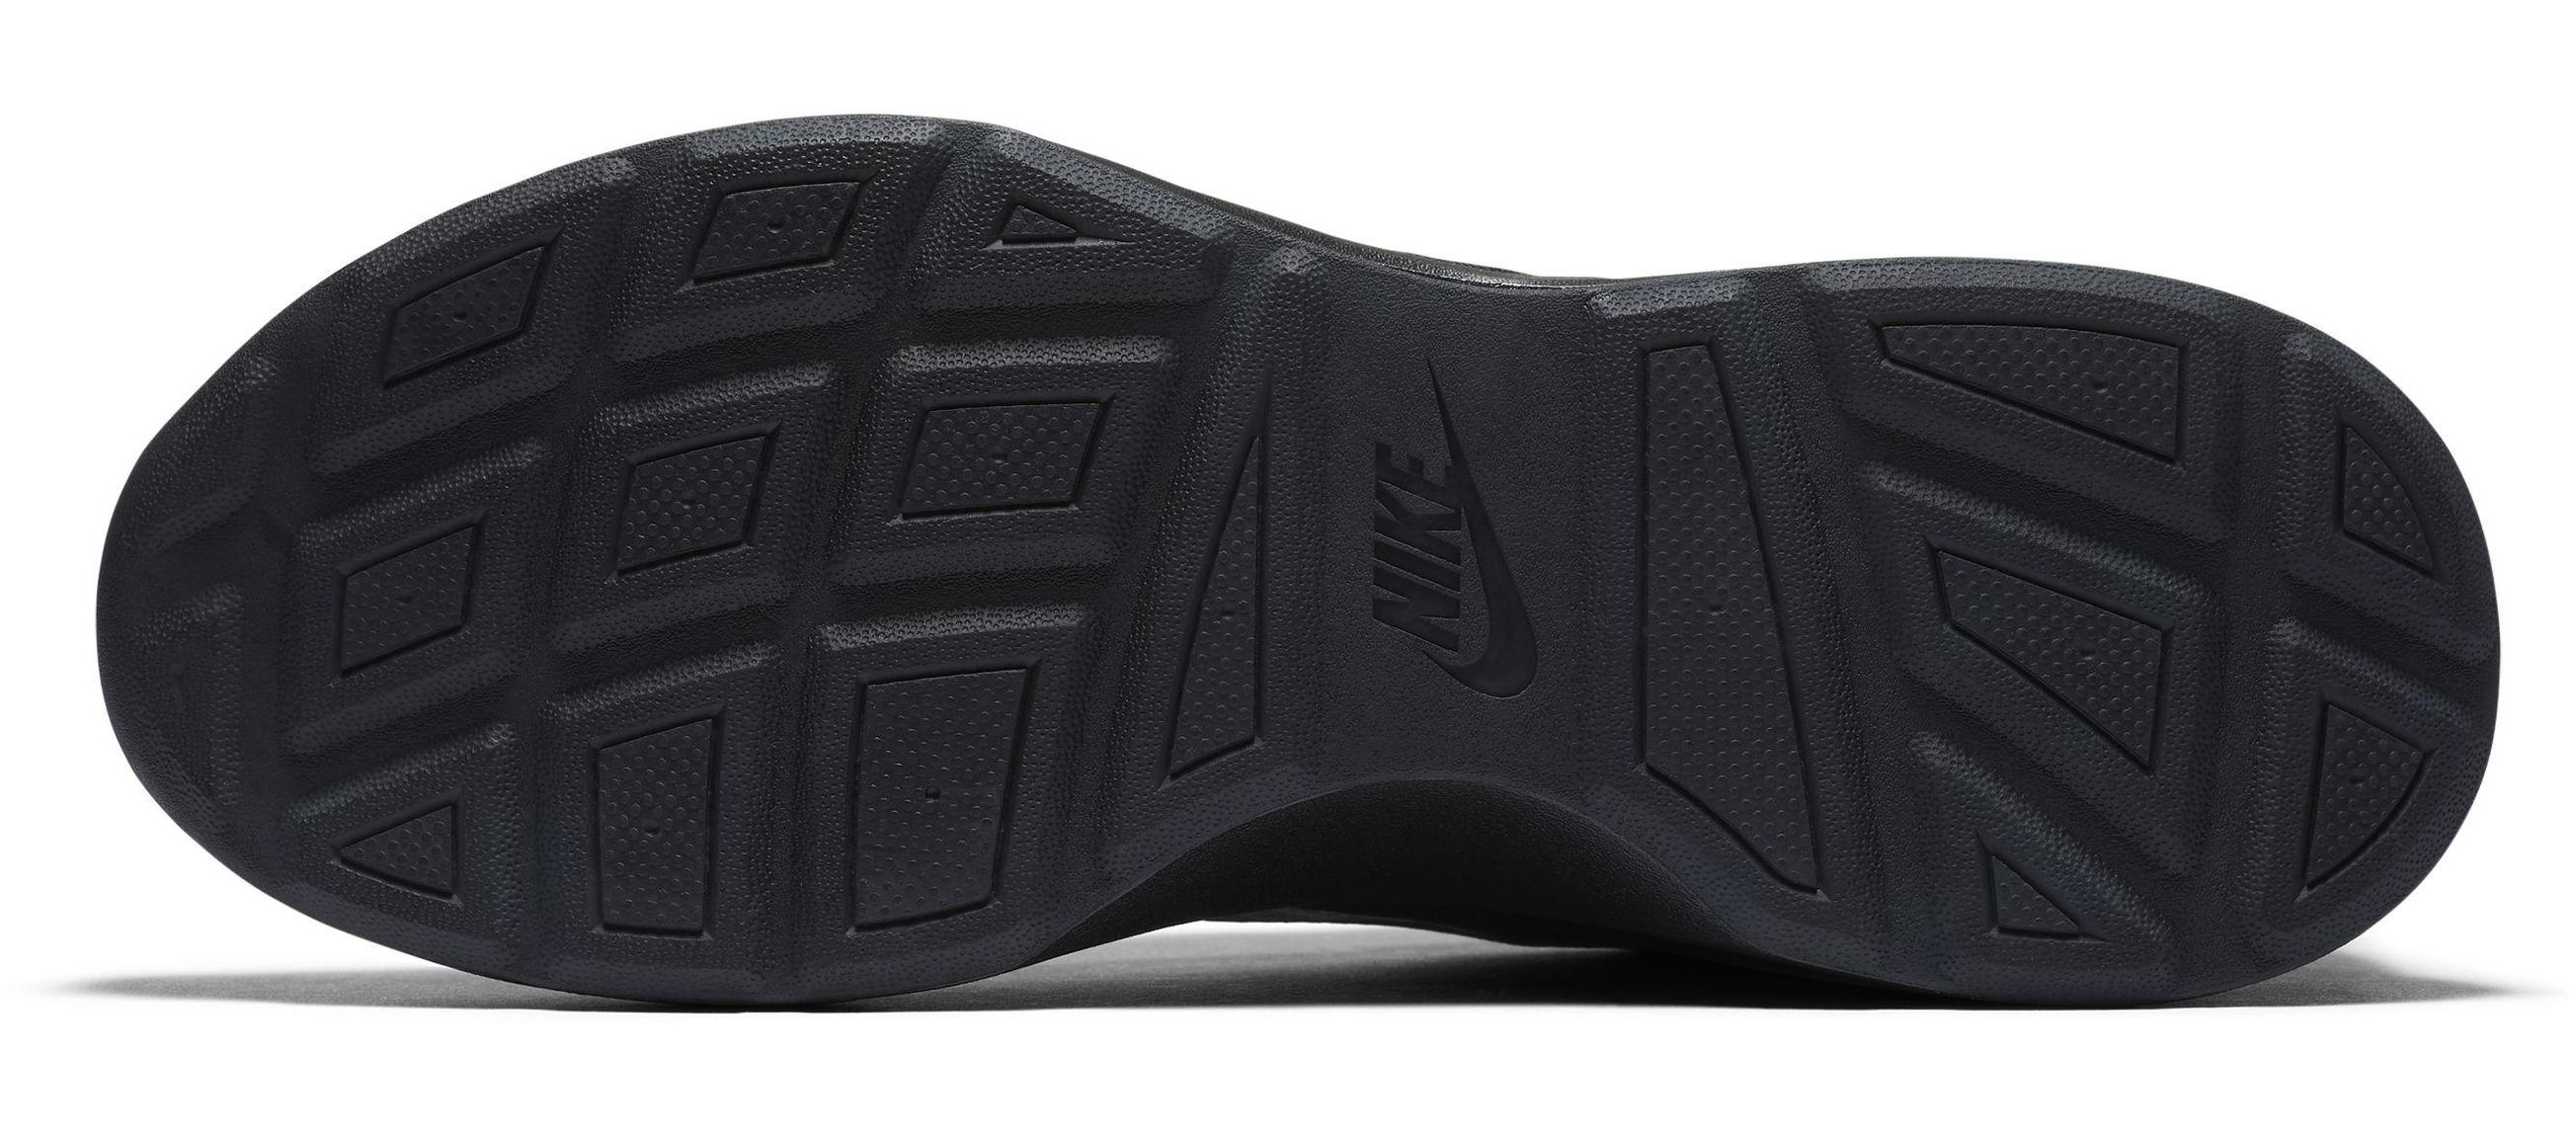 Nike Wearallday Black/Black